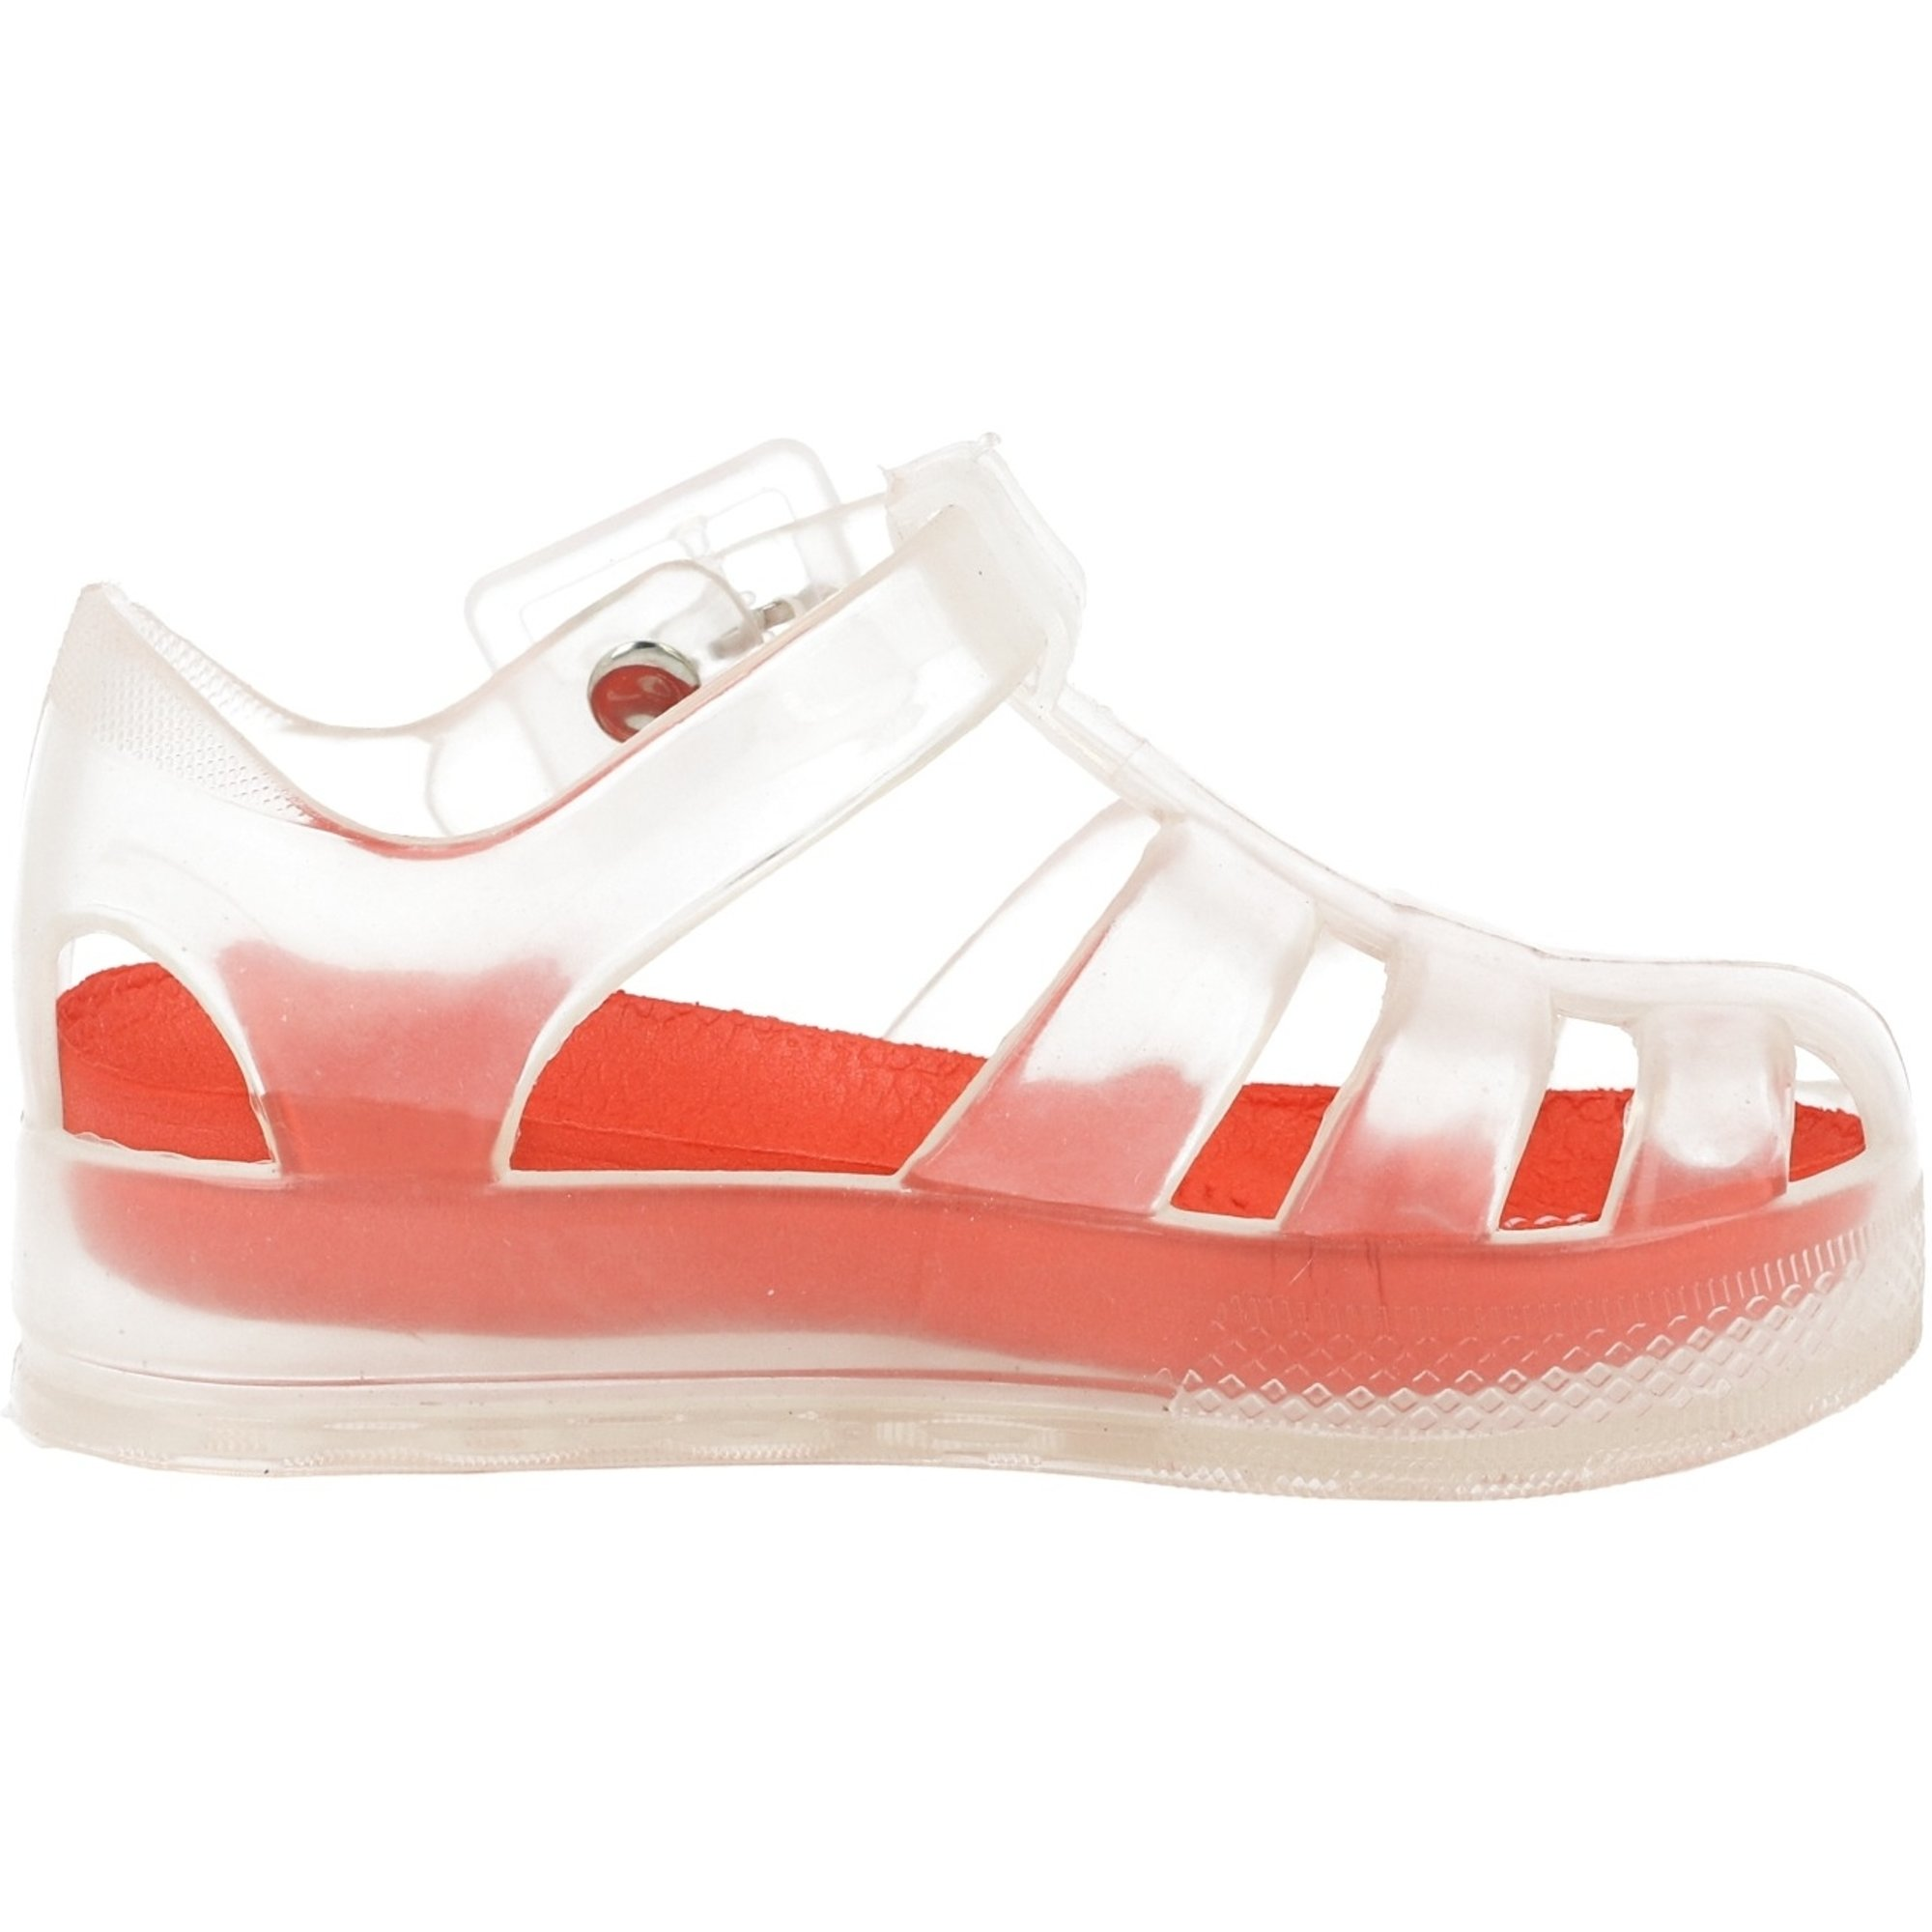 BOSS Sandals Transparent PVC Infant